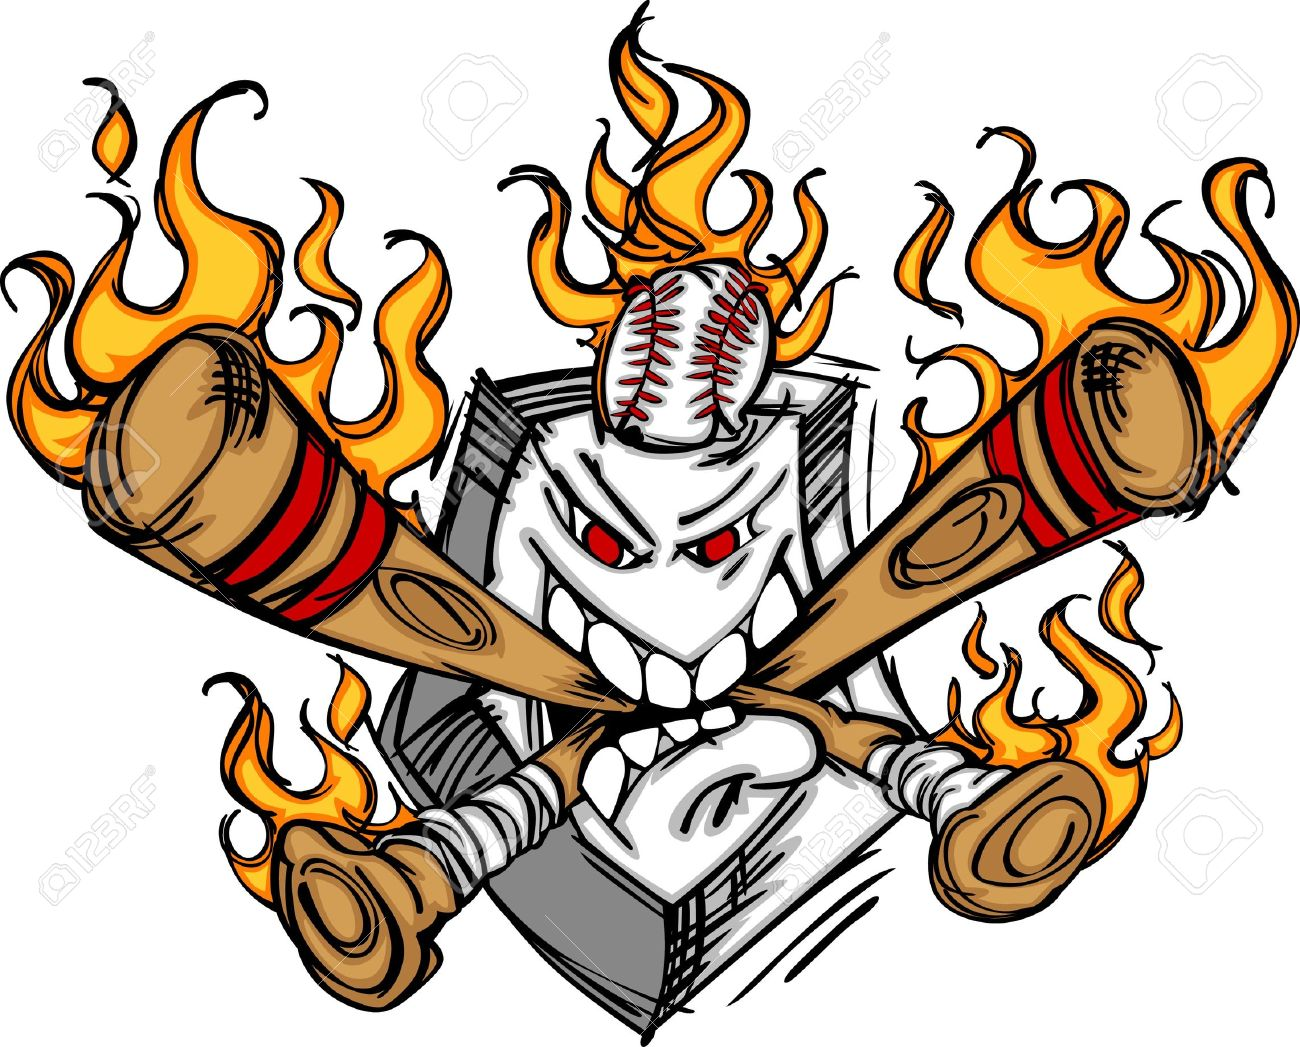 softball baseball plate and bats flaming cartoon logo royalty free rh 123rf com softball logo generator softball logo maker